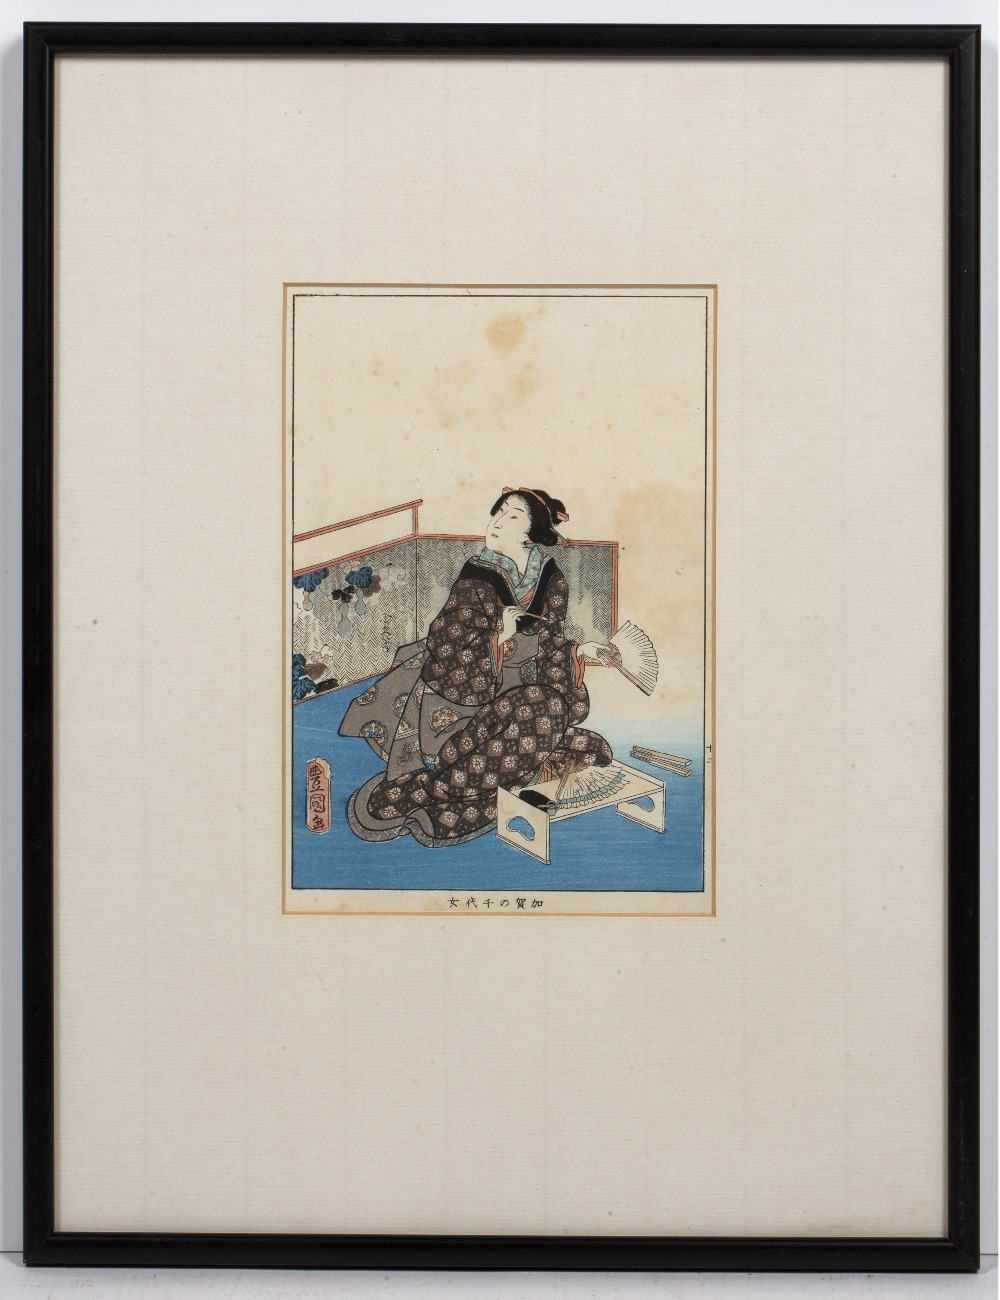 Two Japanese woodblock prints one with samurai in foreground, 35cm x 22cm and one other of a - Image 4 of 6